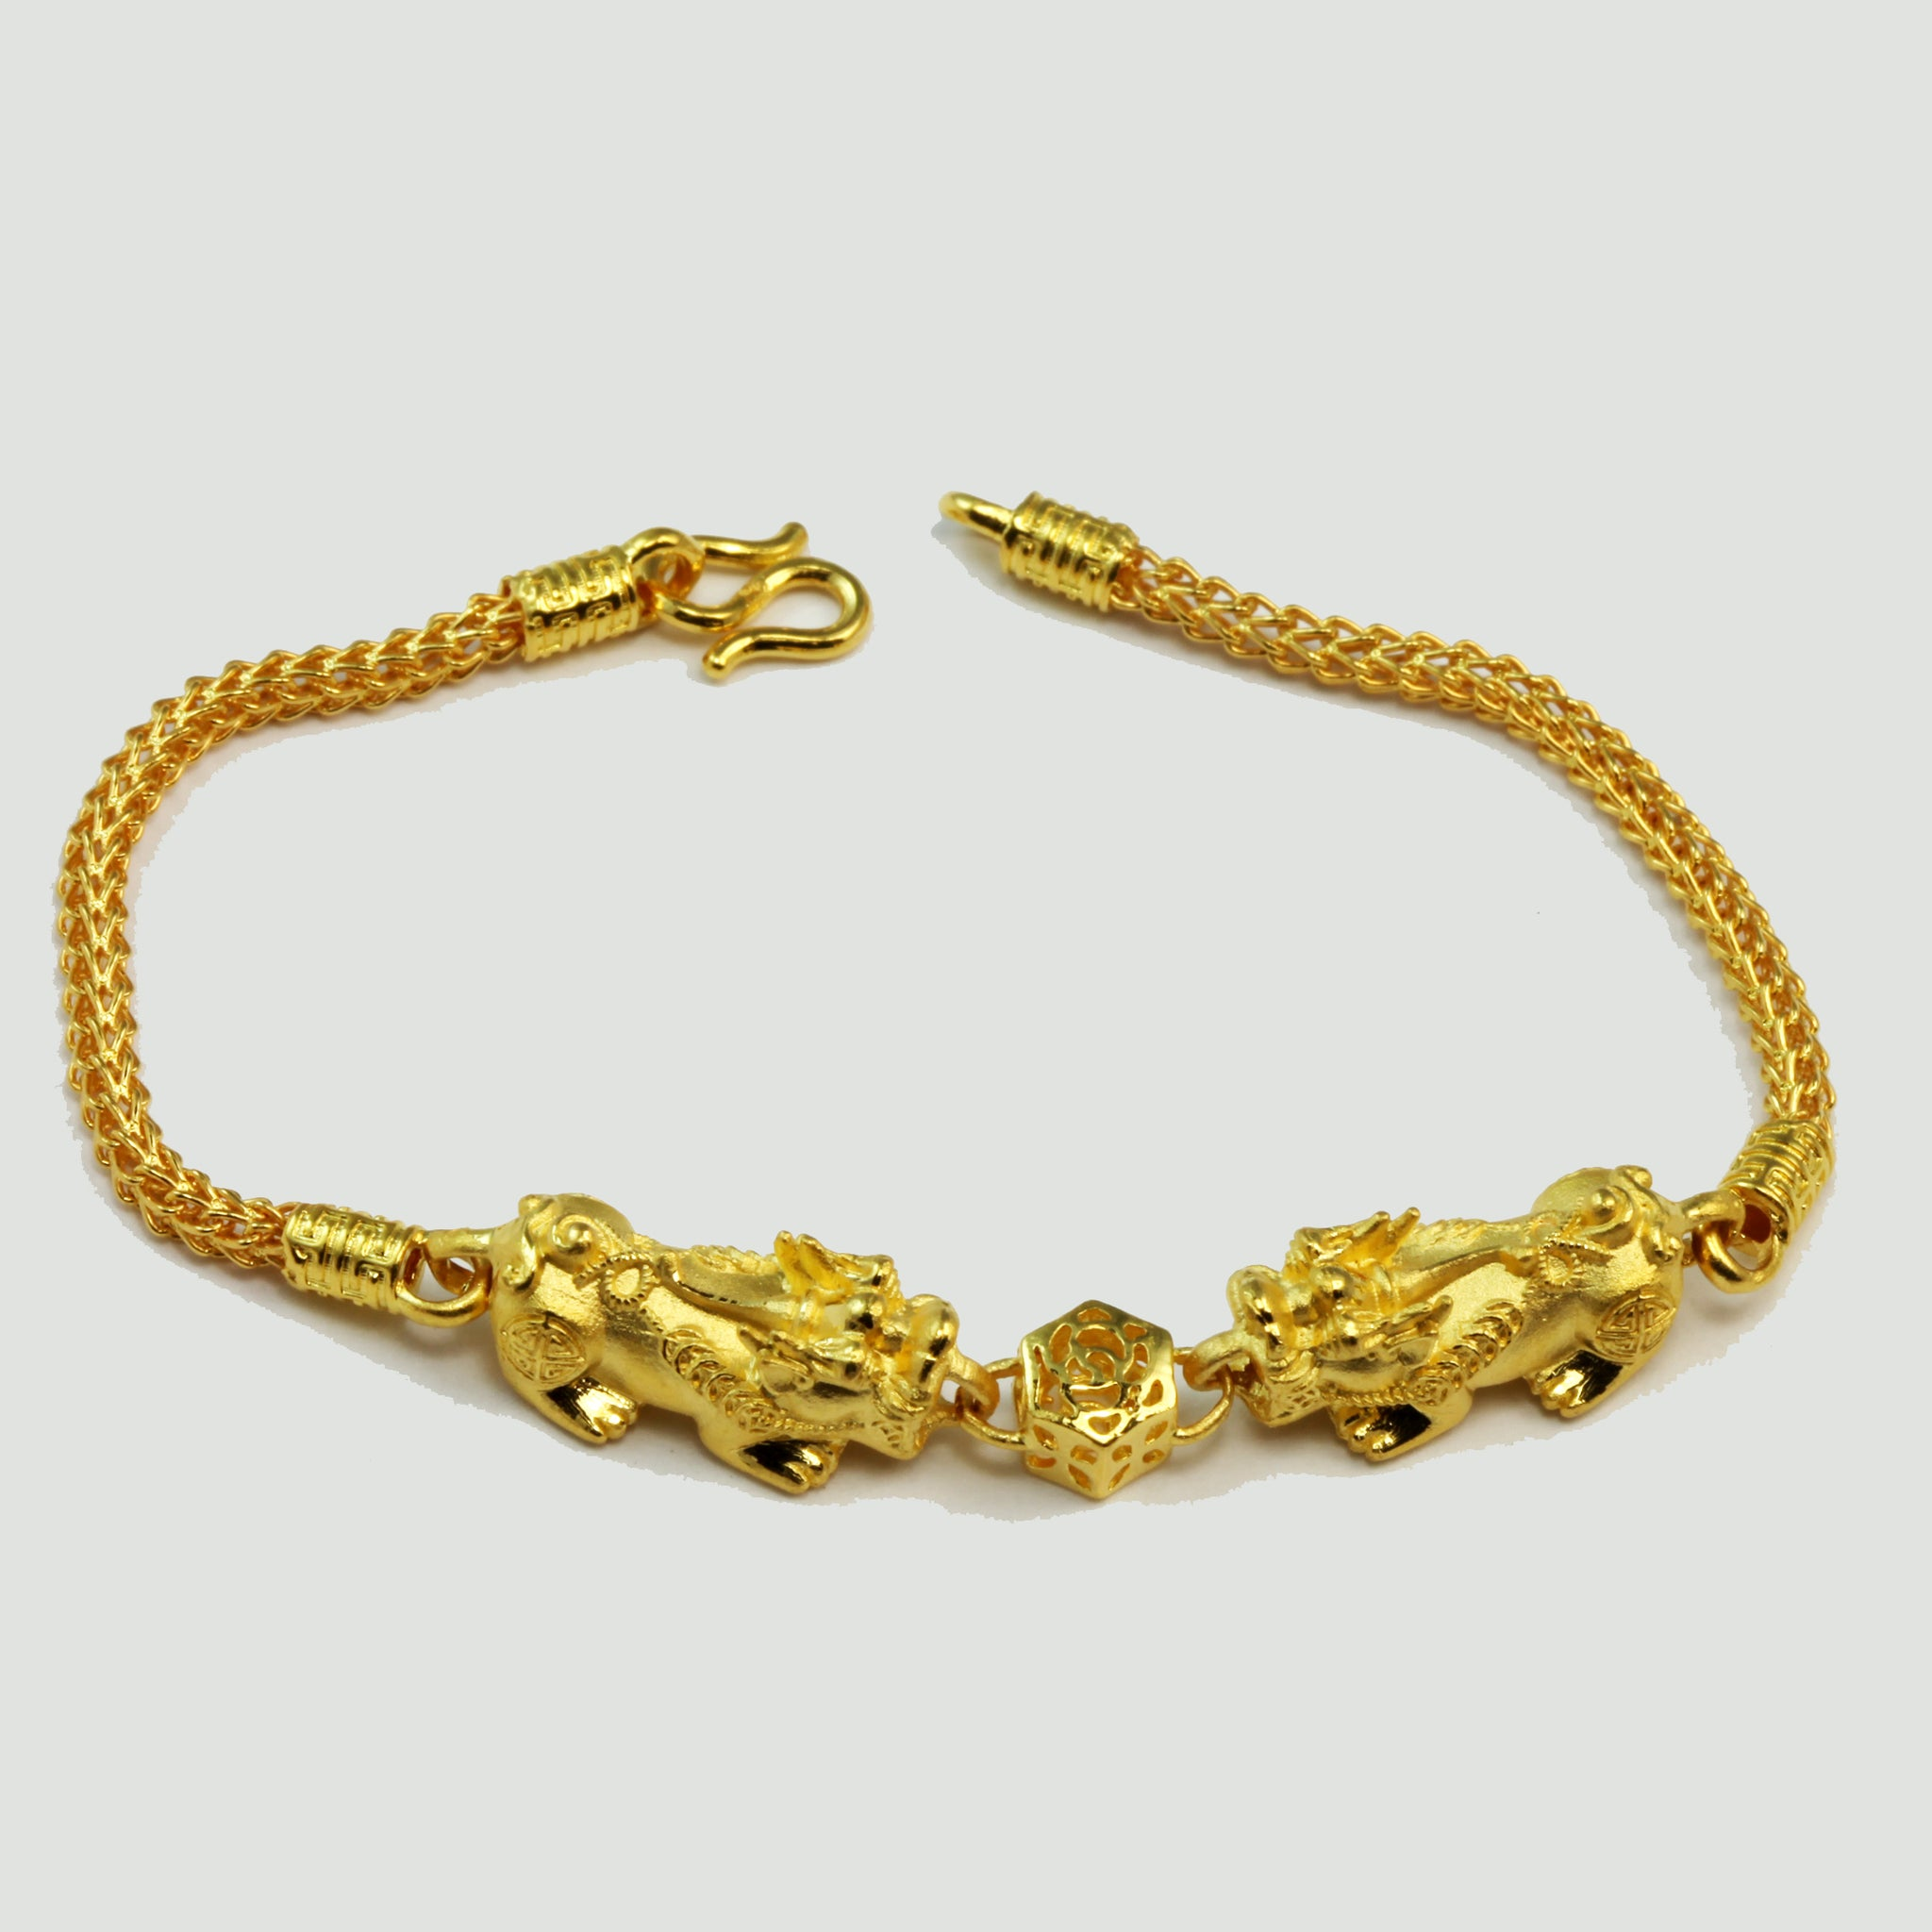 24K Solid Yellow Gold Double Pi Xiu Pi Yao 貔貅 Bracelet 19.8 Grams